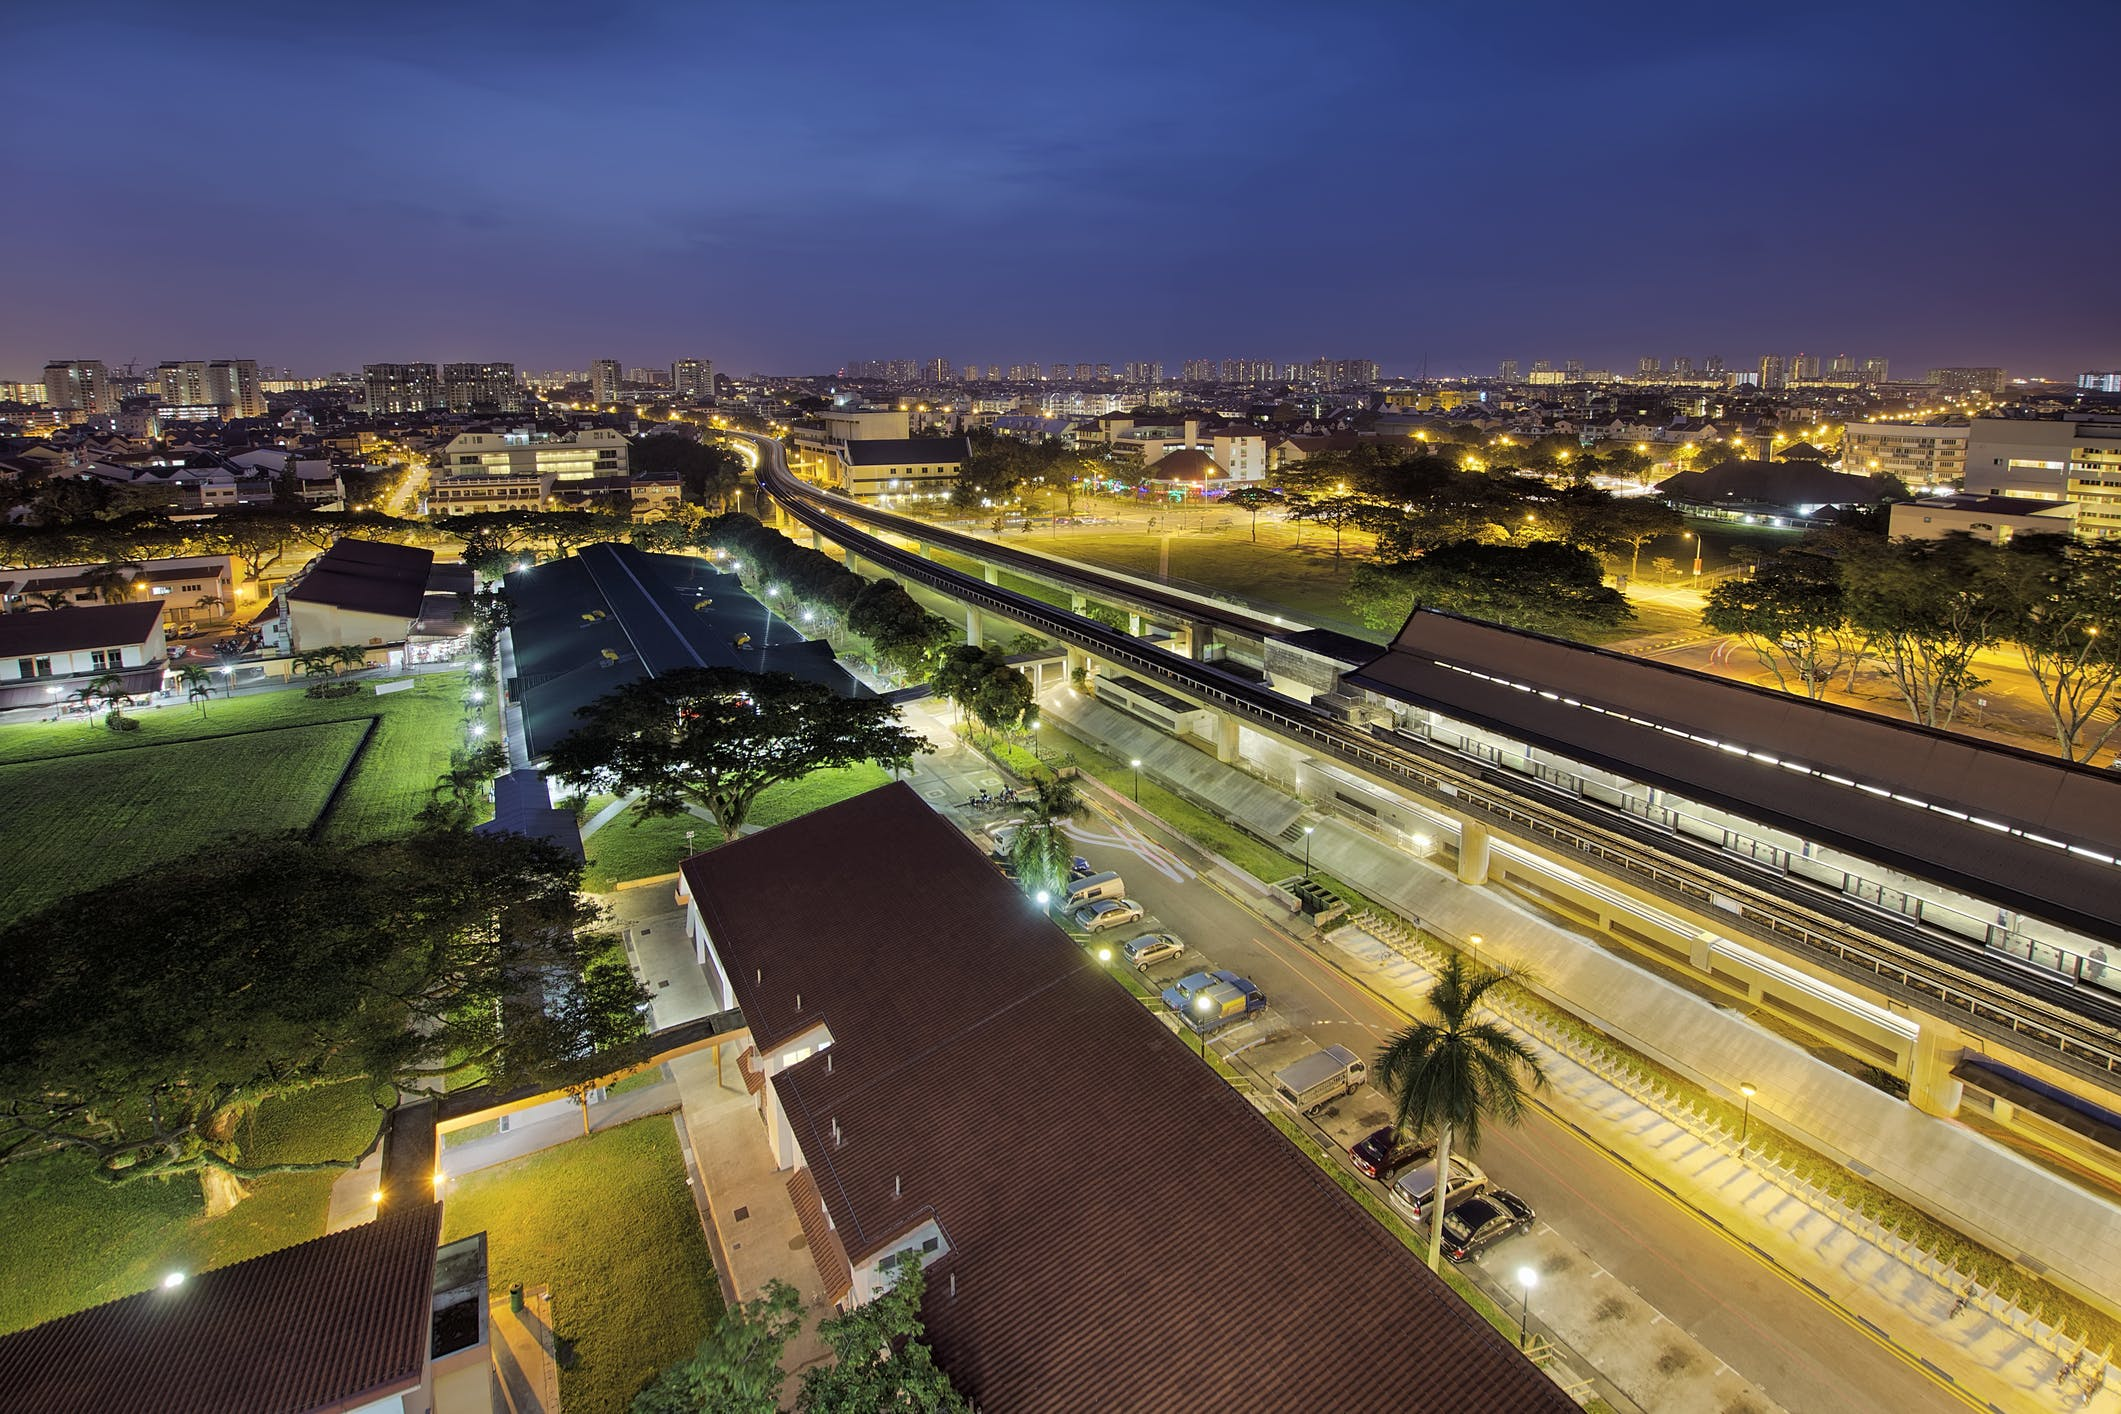 Eunos MRT Station is just a few minutes away from Parc Esta